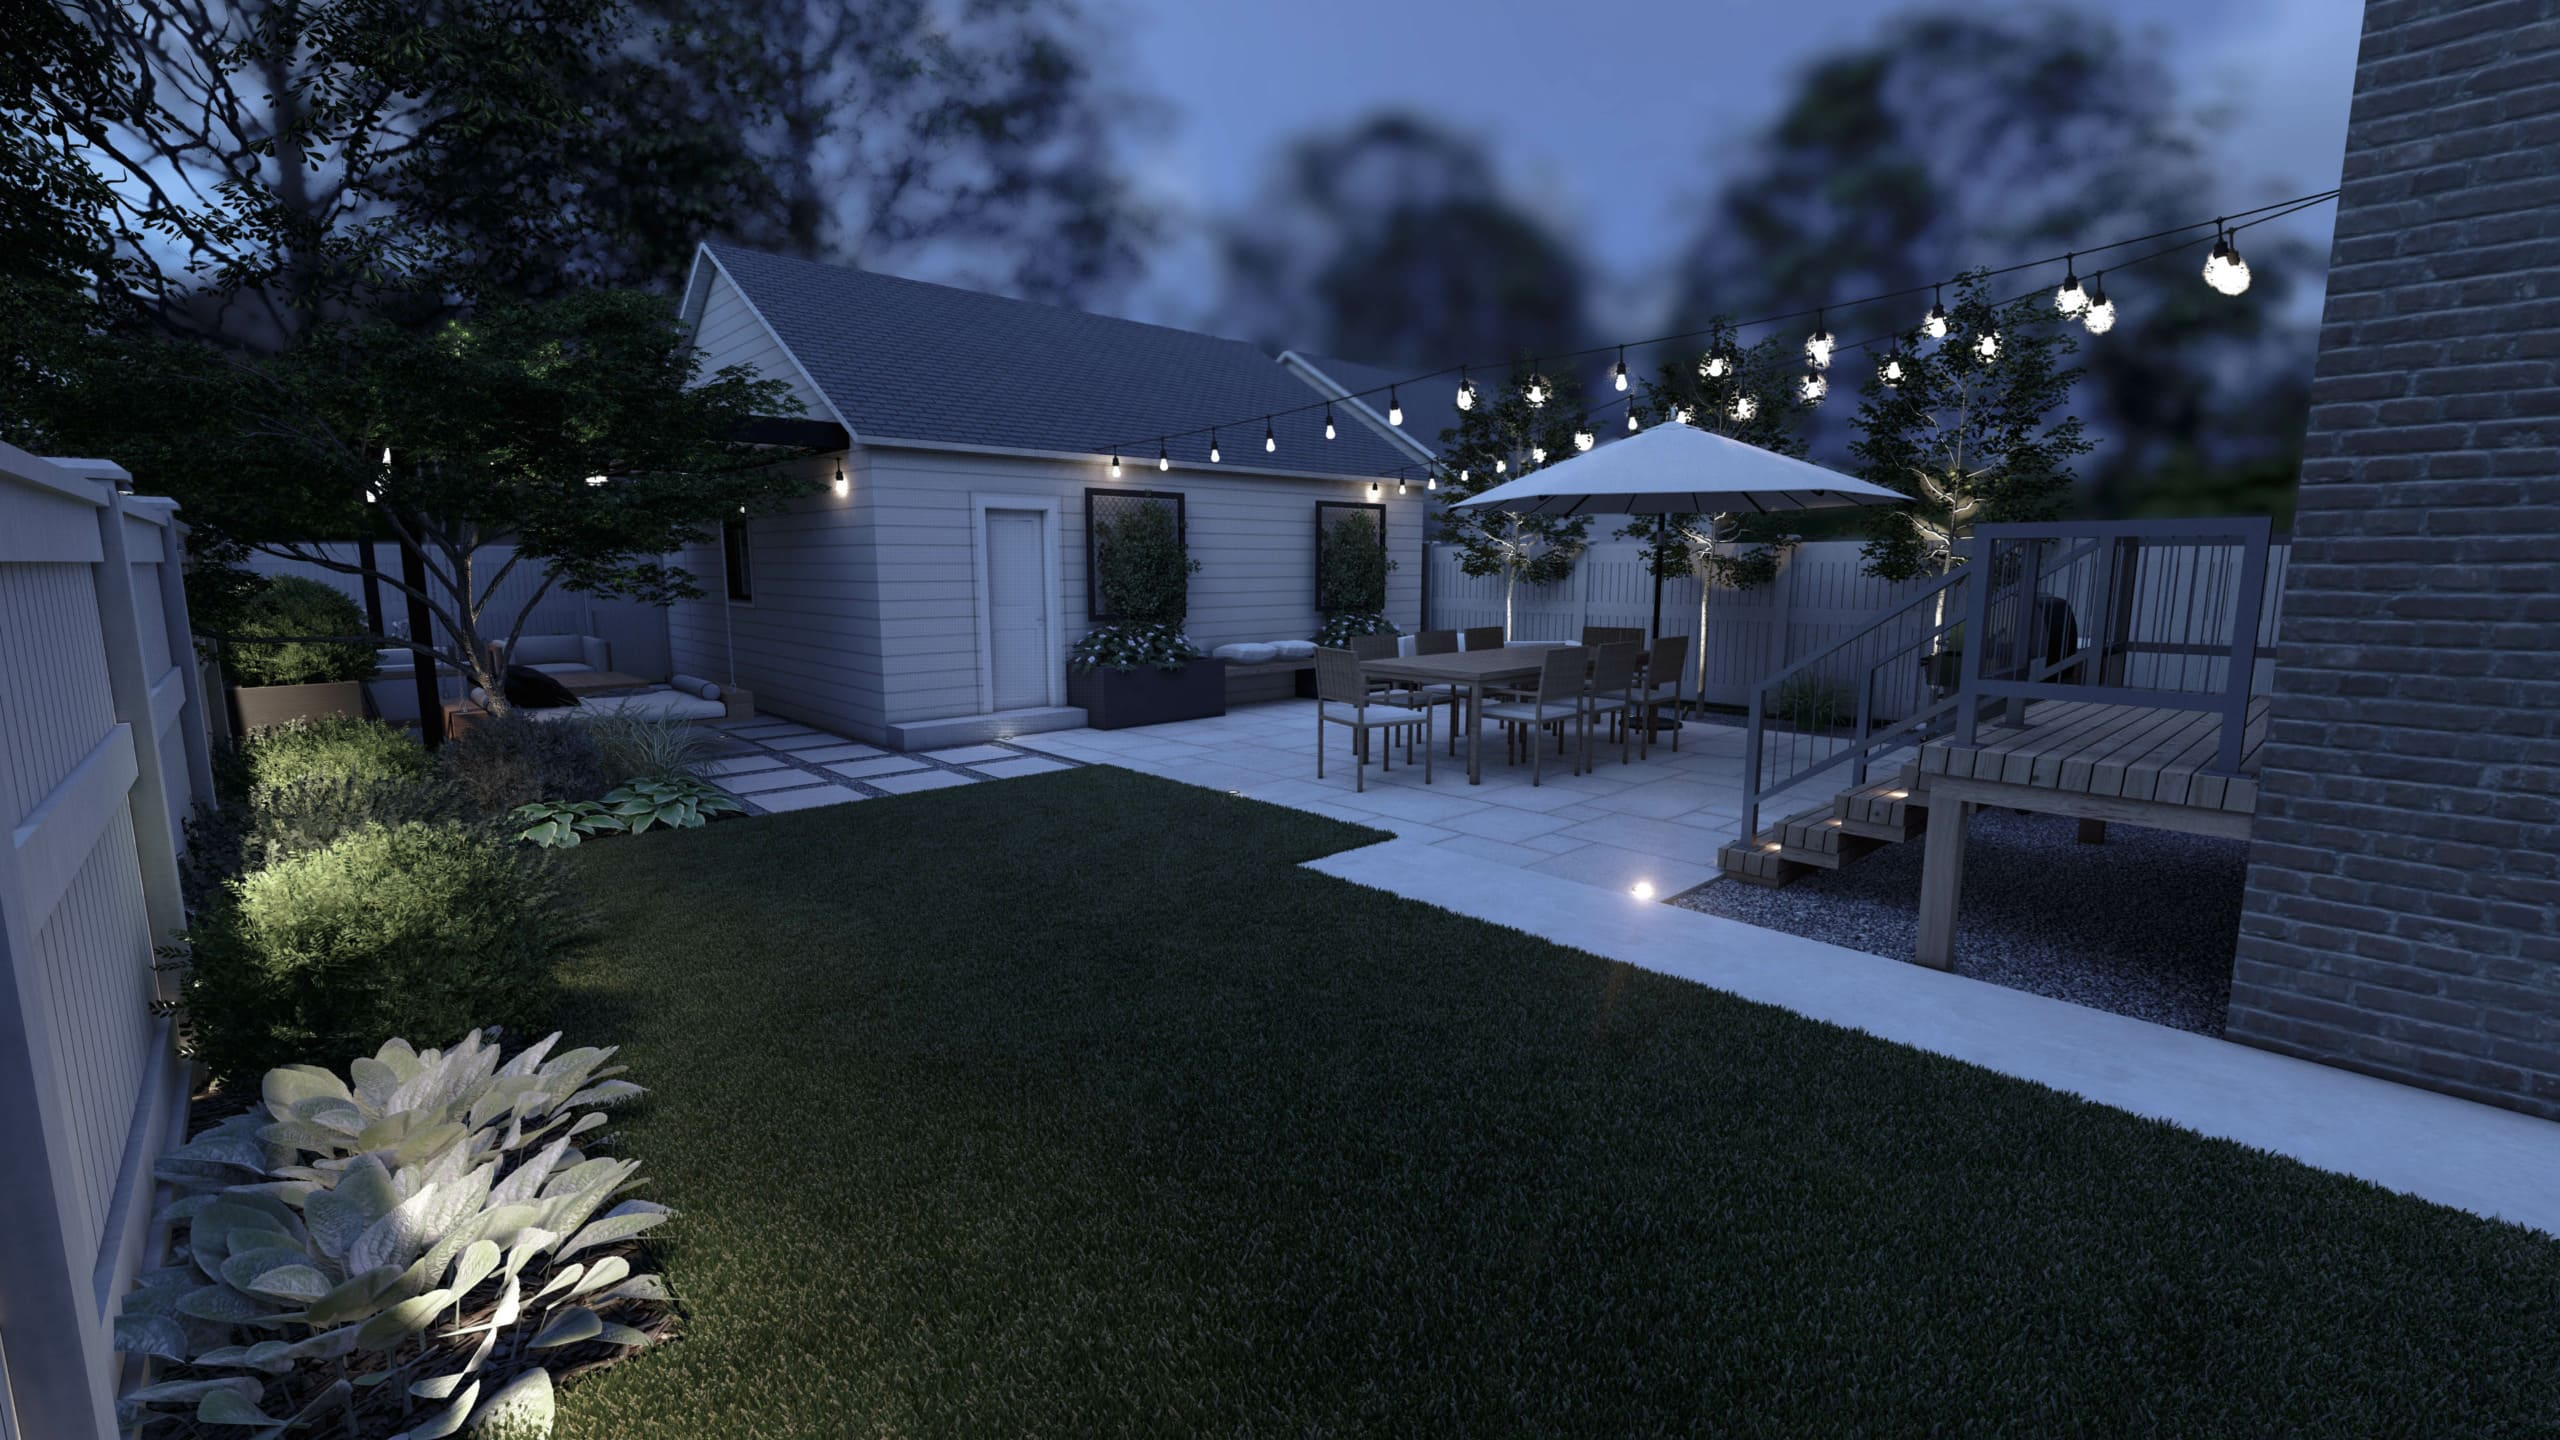 Renderings from yardzen for our backyard